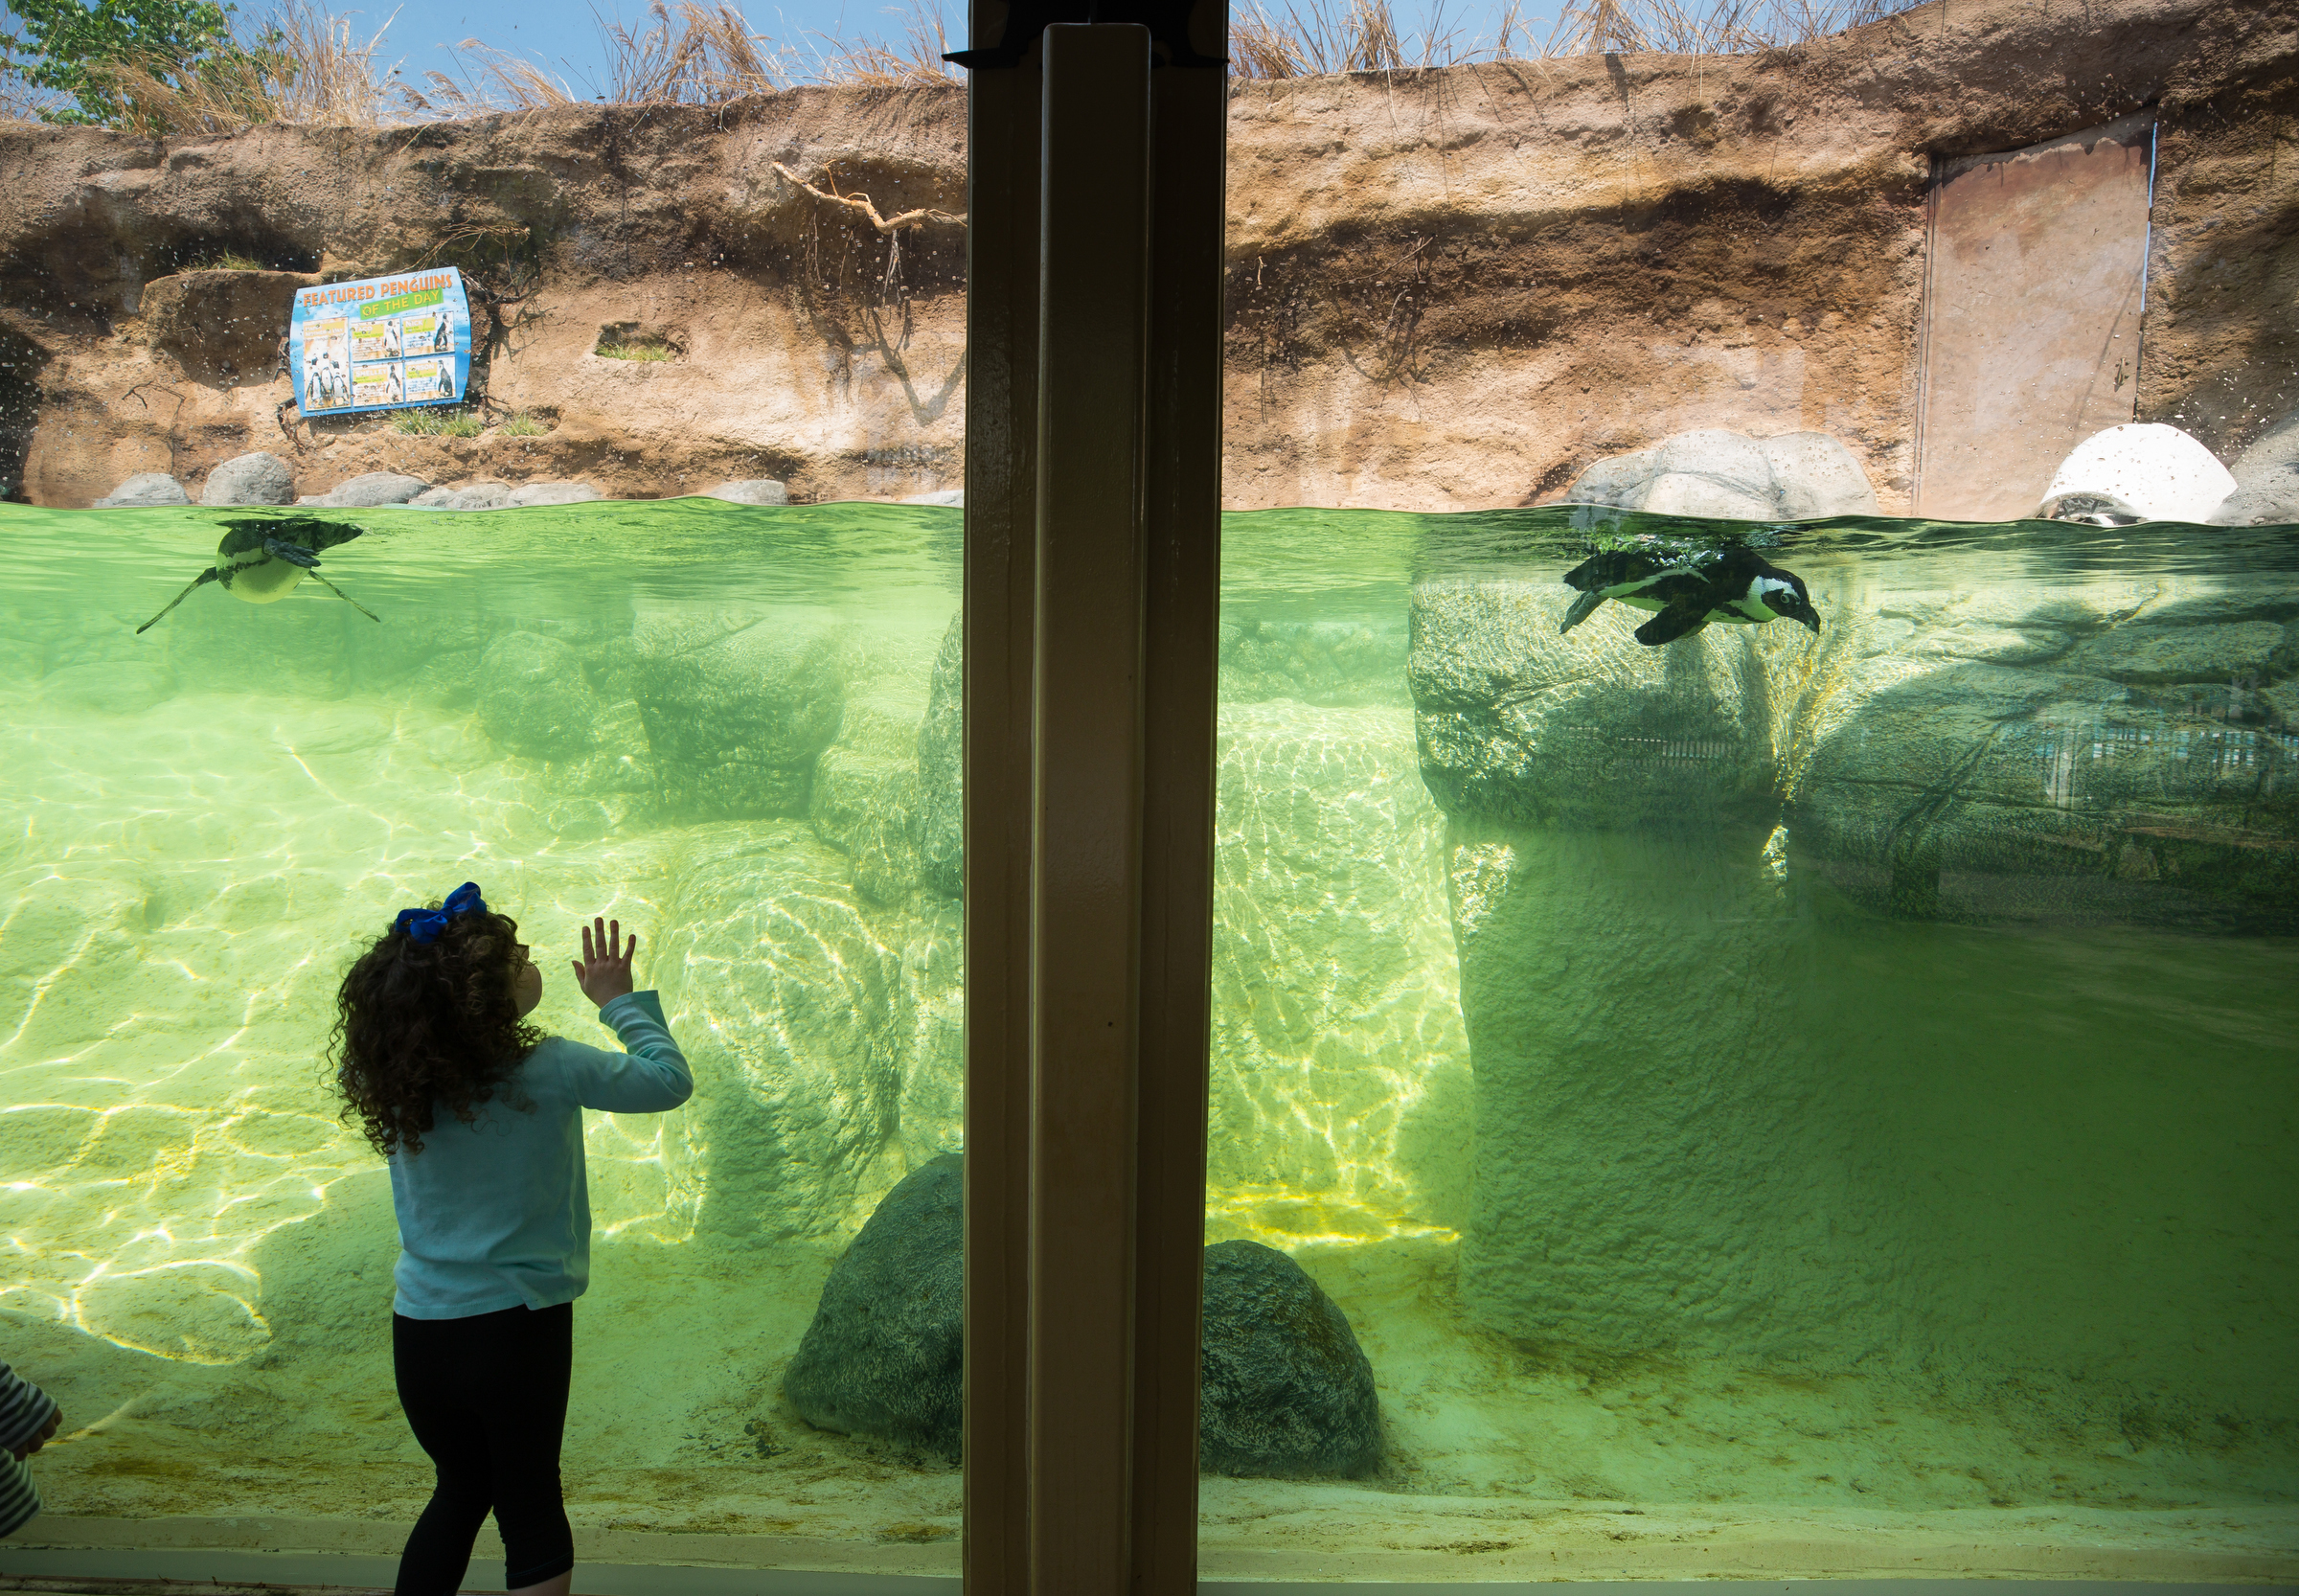 Four-year-old Khloe Henry of Cherry Hill visits the rare African penguins which are back on display in a new outdoor landscape that more closely mimics their natural environment, at the Camden Aquarium.